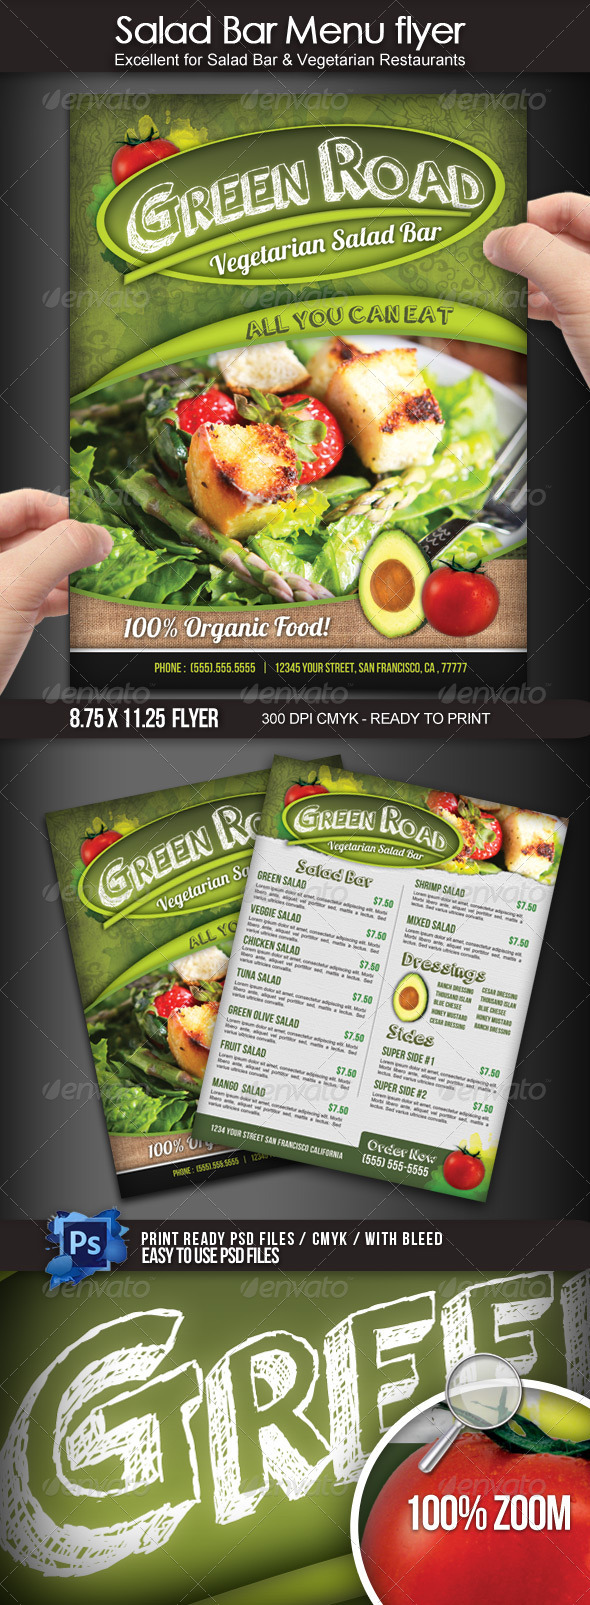 Salad Bar Menu Flyer